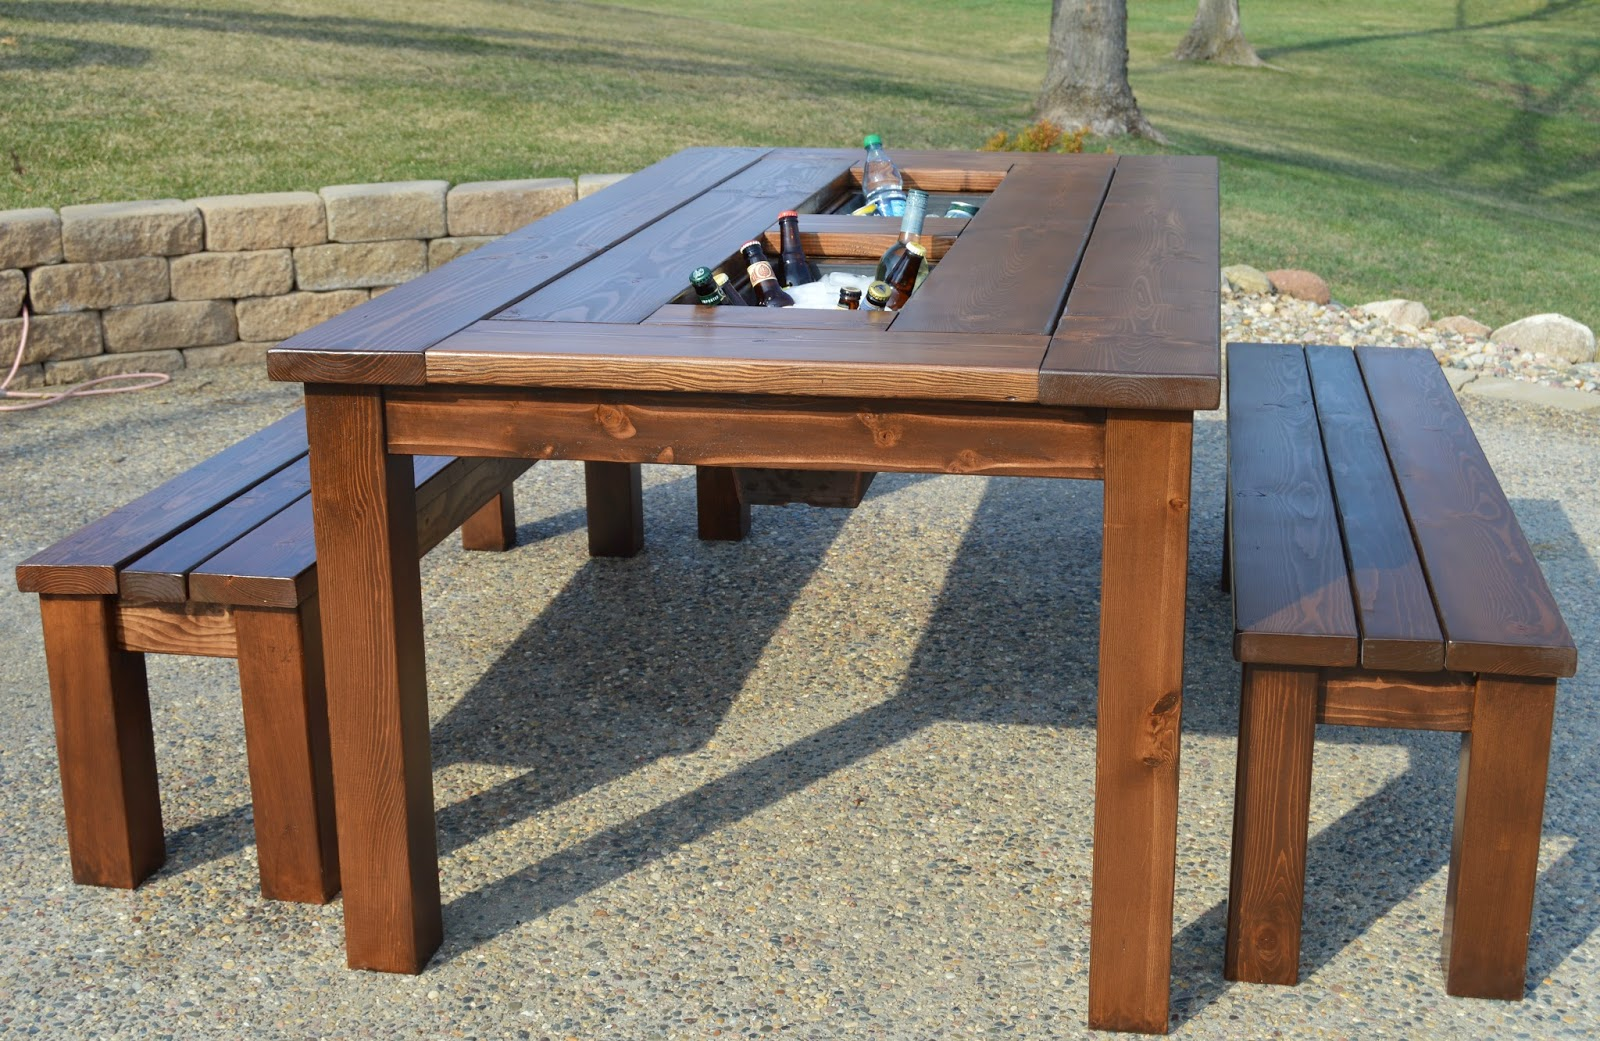 Table Drinks Cooler Kruses Workshop Patio Party Table With Built In Beer Wine Ice